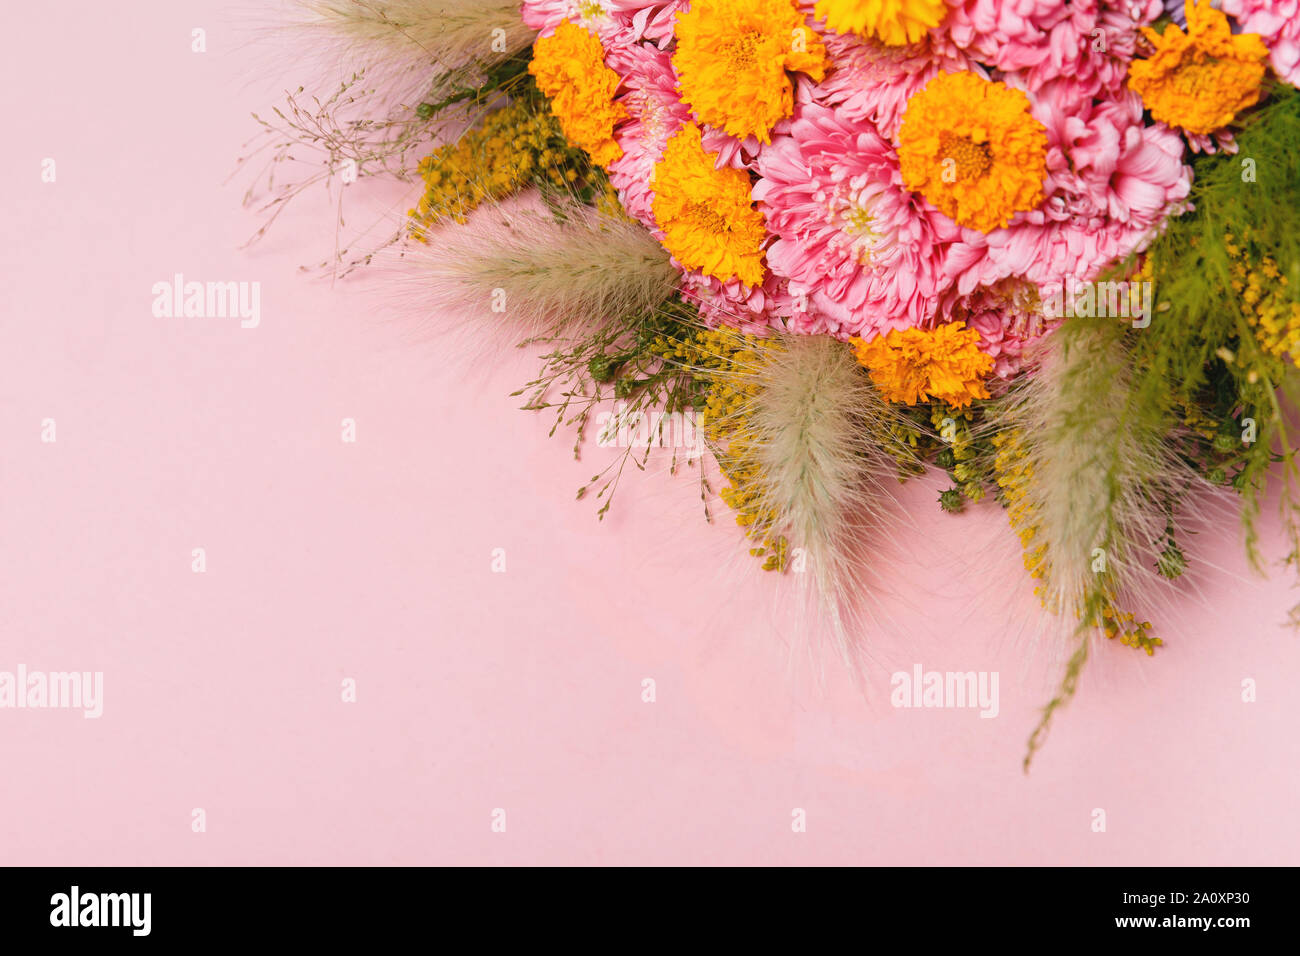 Bouquet Of Autumn Flowers Pink And Yellow Asters And Autumn Leaves And Herbs On Pastel Pink Background Stock Photo Alamy